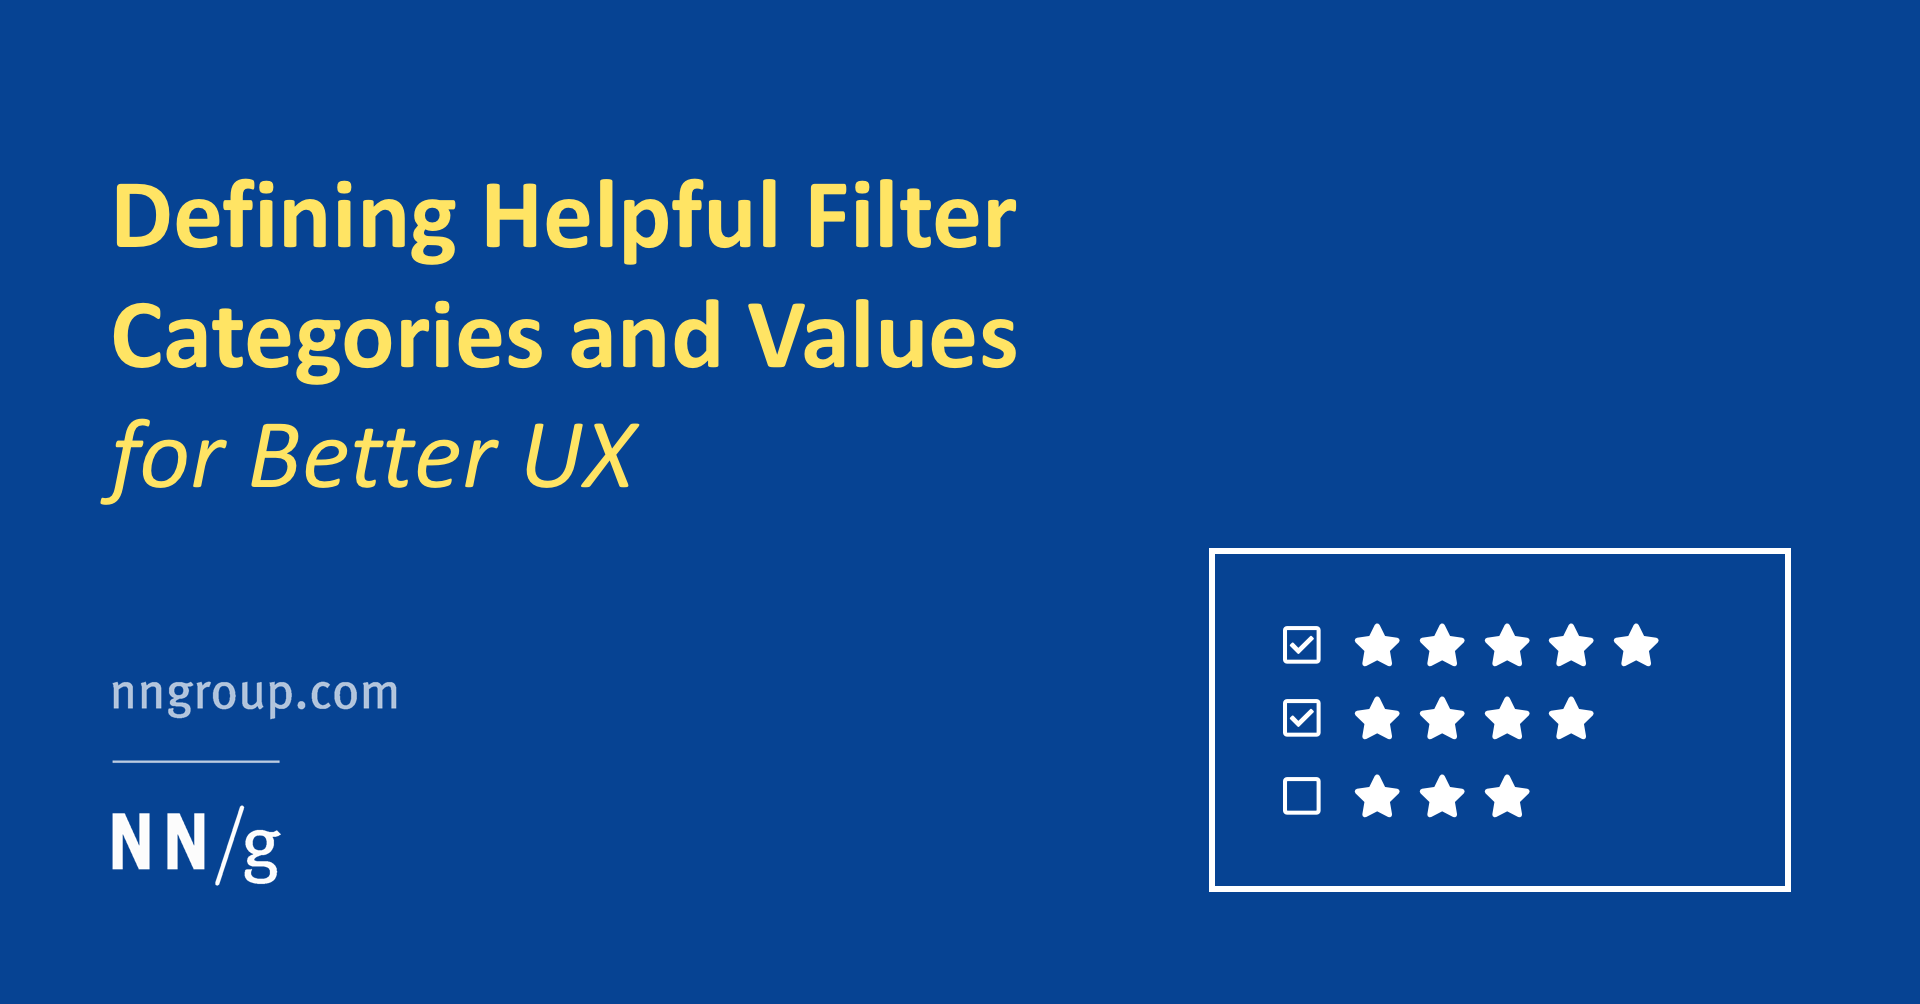 Defining Helpful Filter Categories and Values for Better UX